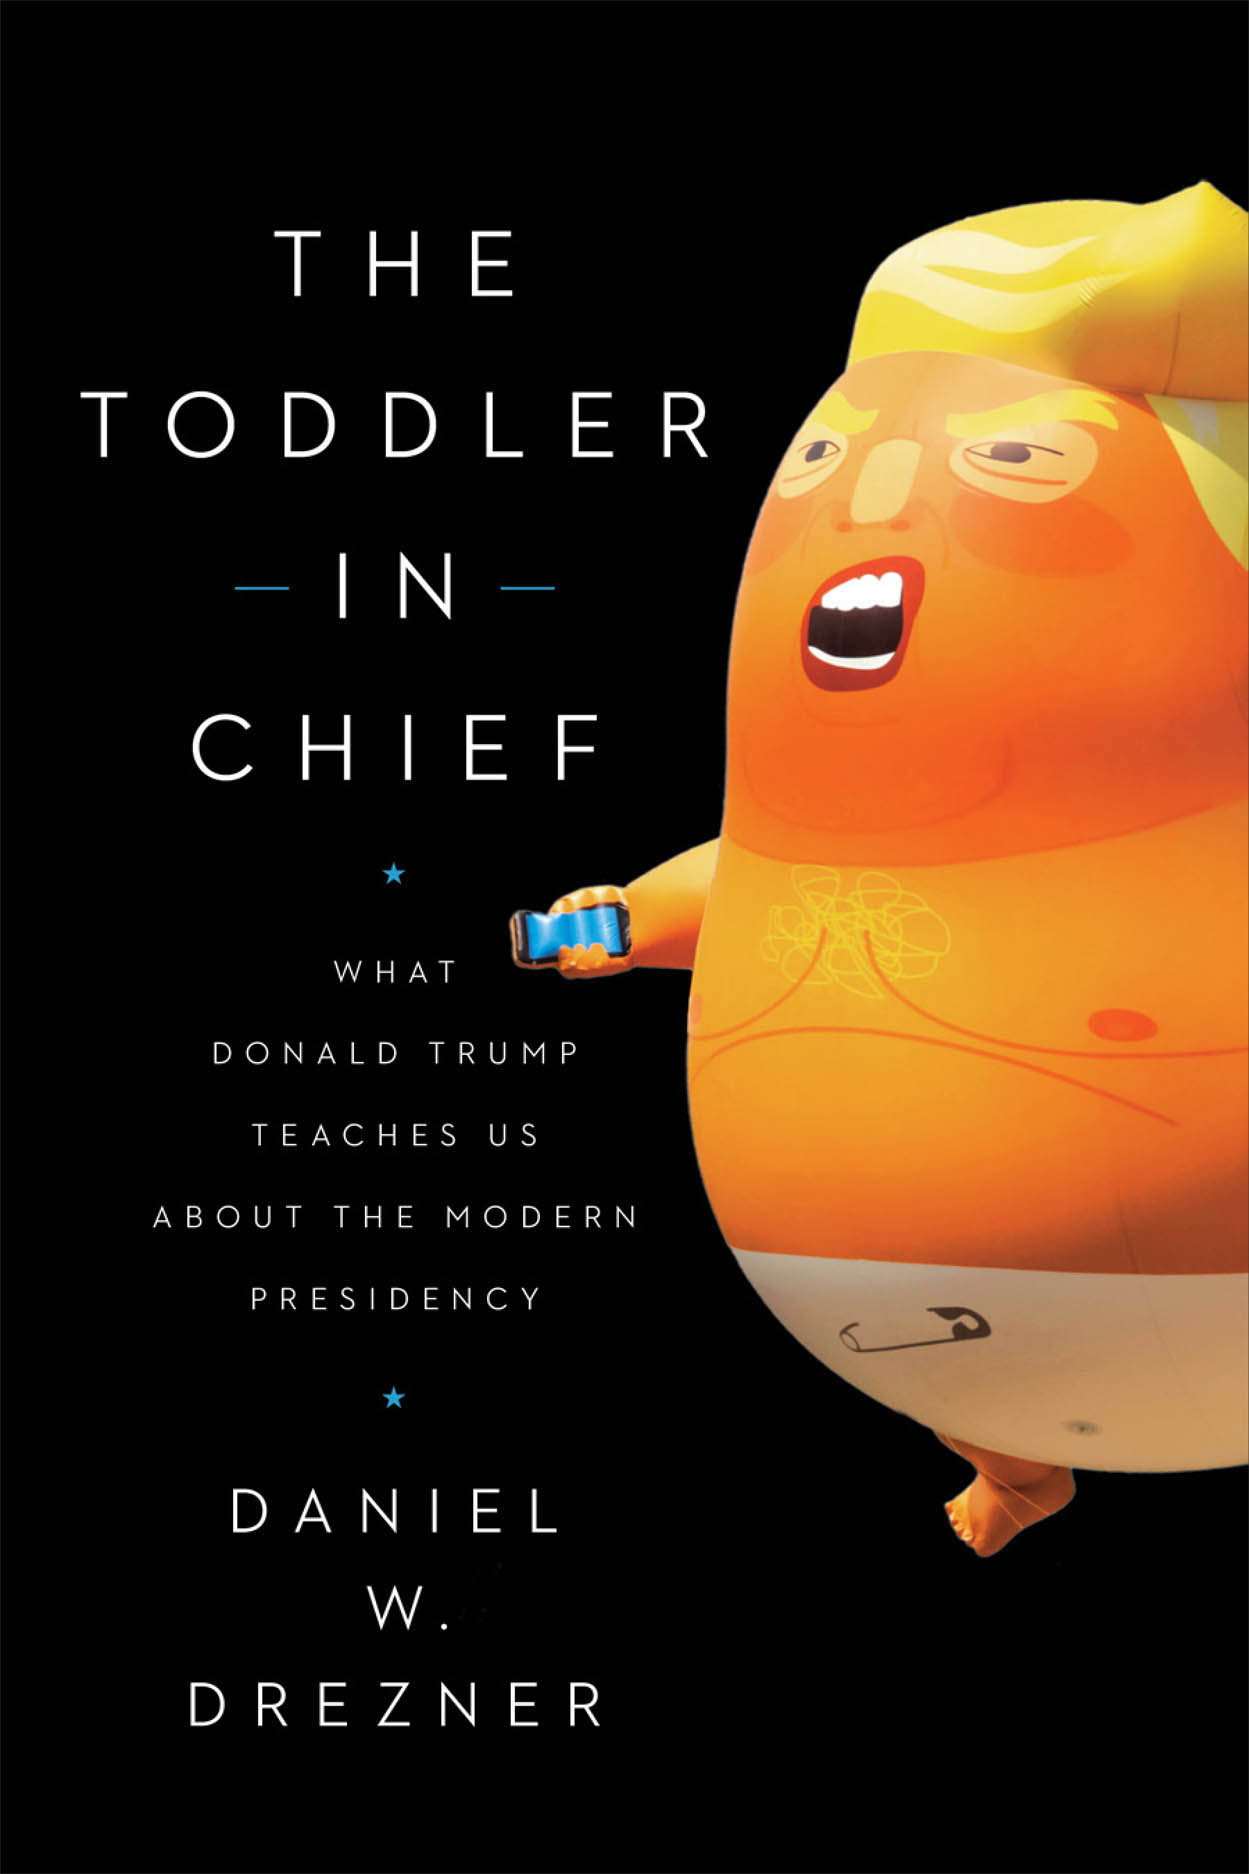 The Toddler in Chief